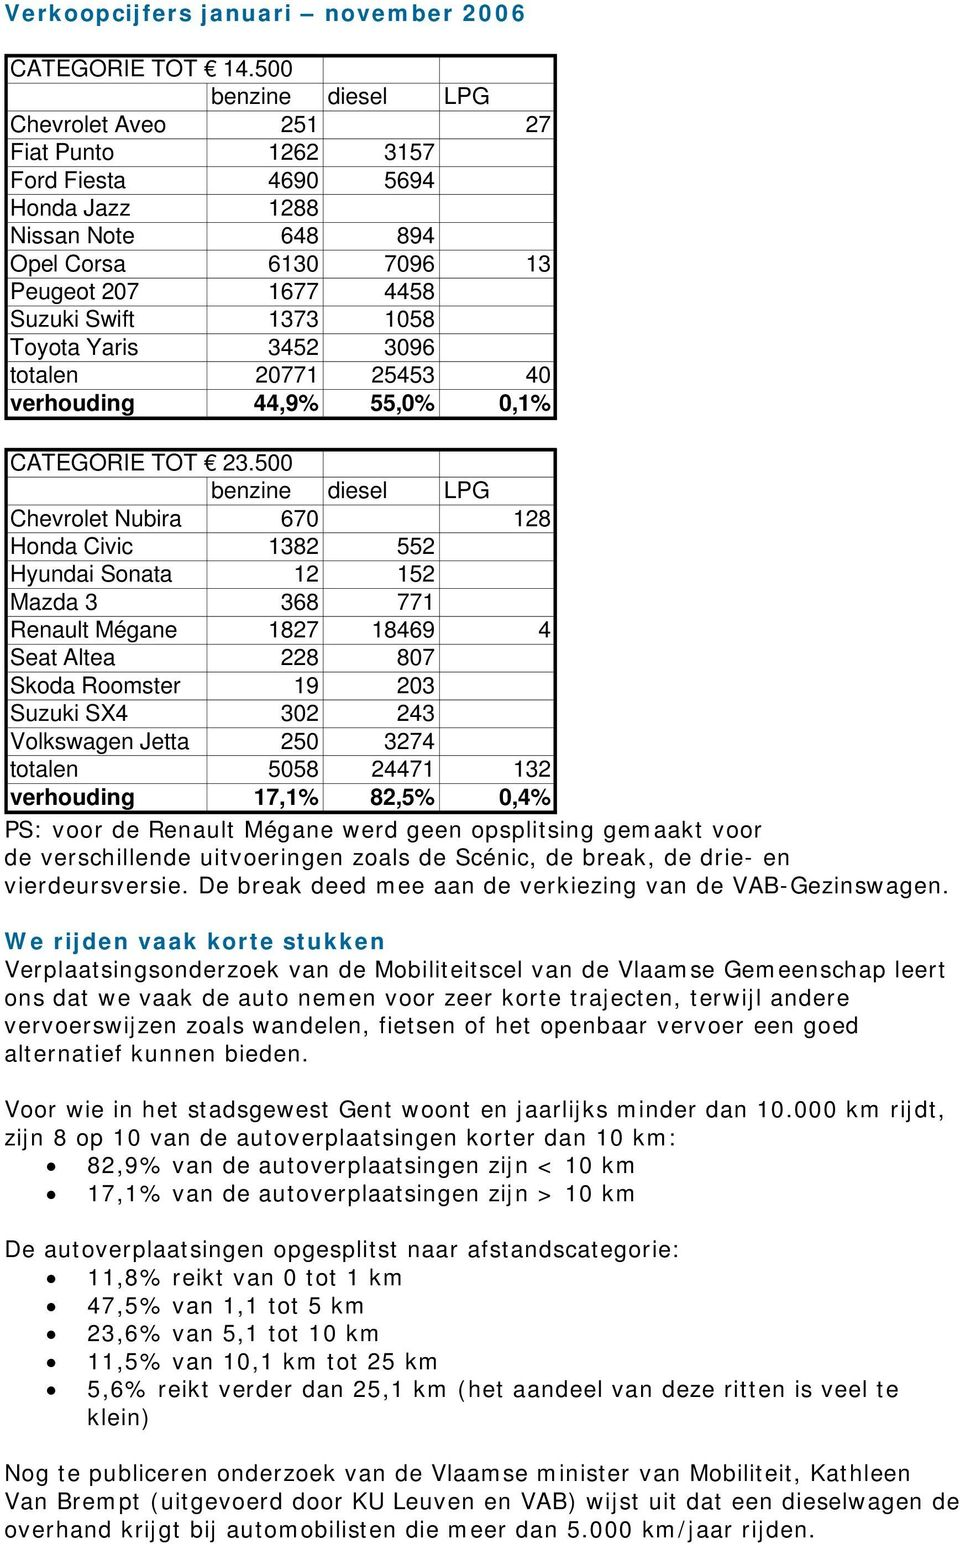 Yaris 3452 3096 totalen 20771 25453 40 verhouding 44,9% 55,0% 0,1% CATEGORIE TOT 23.